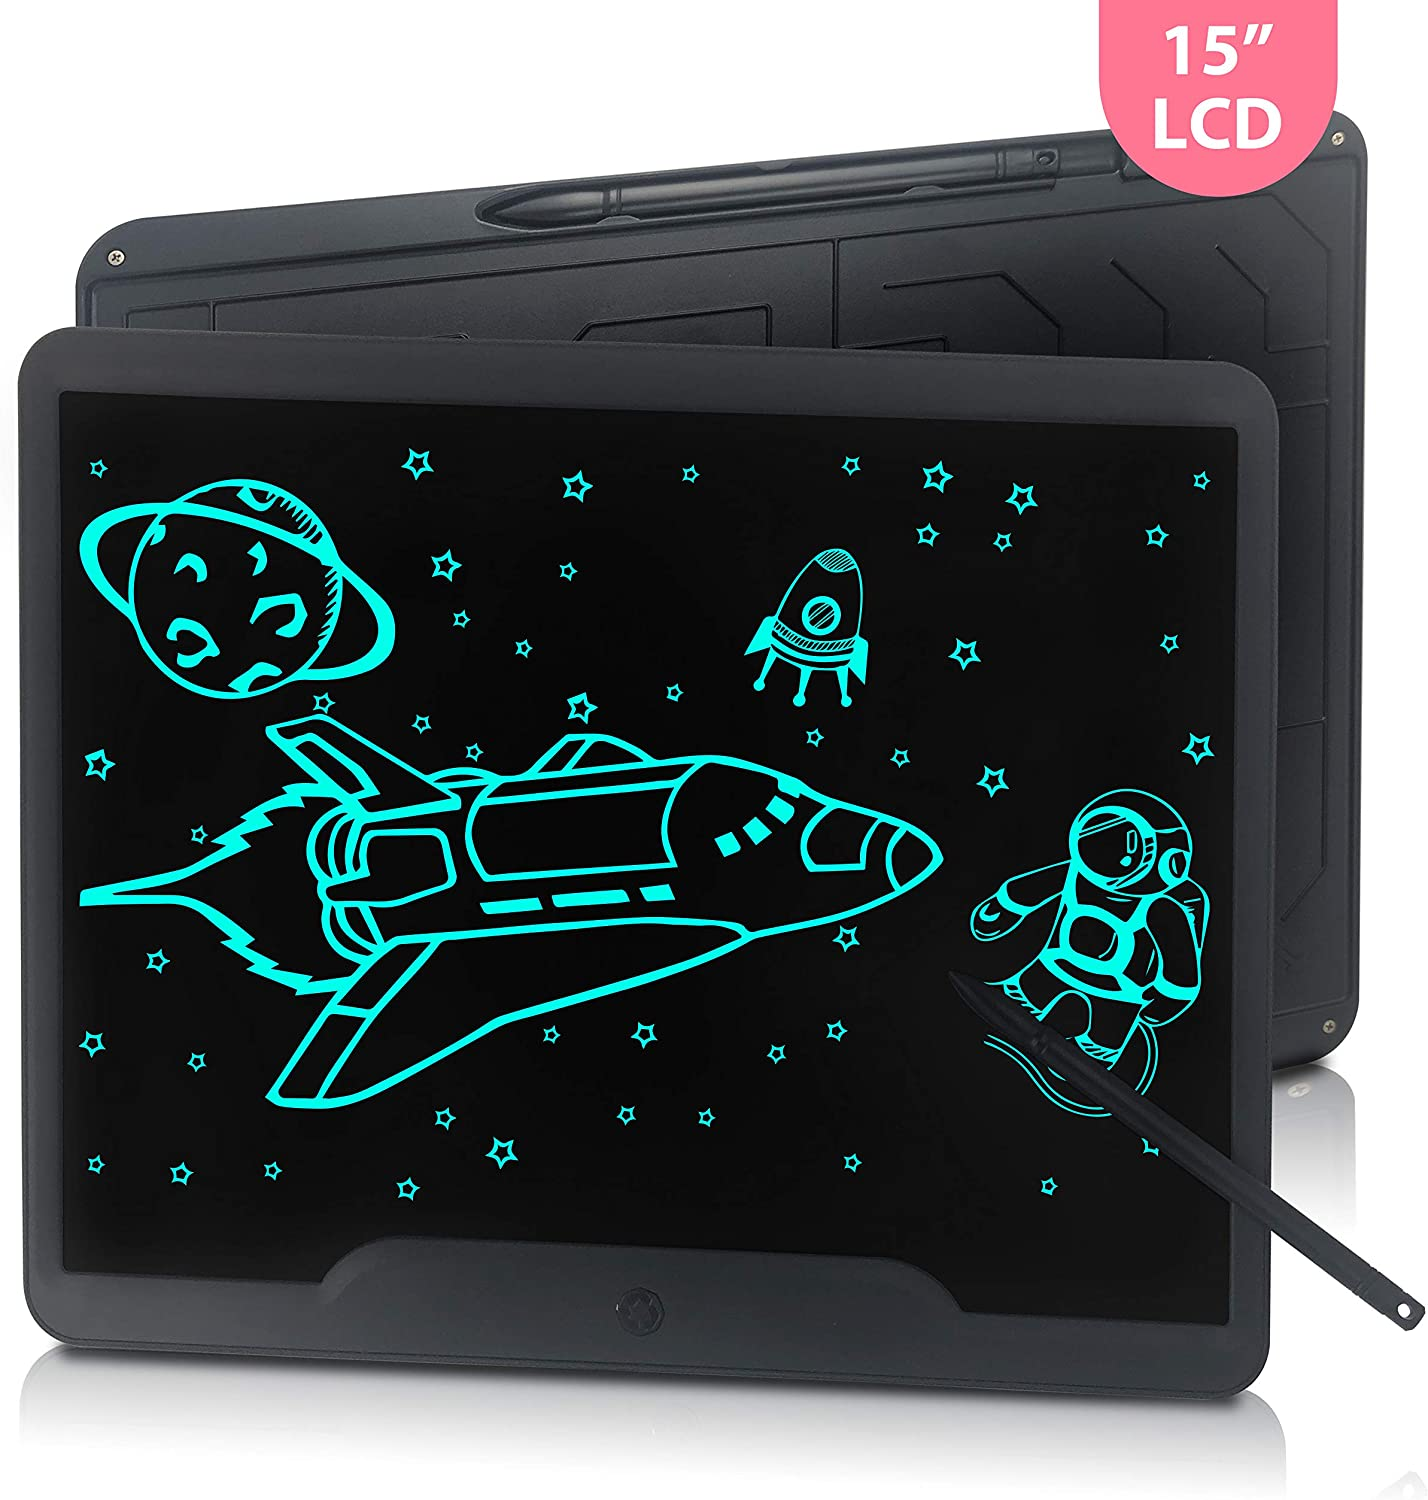 15 inch LCD Writing Drawing Tablet, JONZOO Electronic Blackboard Digital Erasable Memo Pad Message Board for Kids Adults at Home School Office, Black